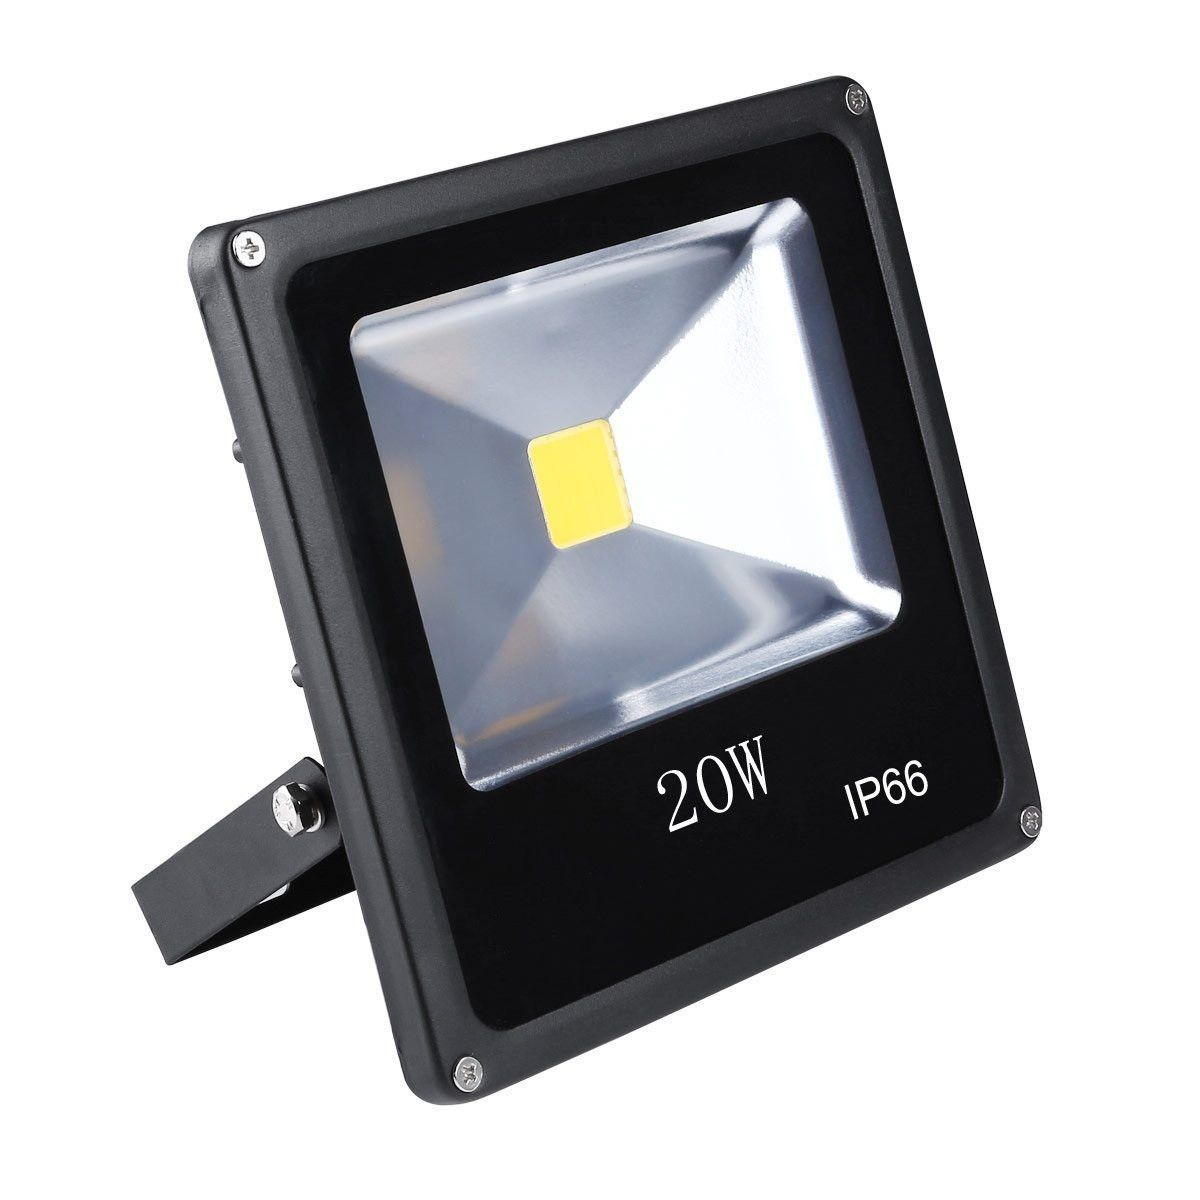 Commercial Outdoor Led Flood Light Fixtures 20W Outdoor Led Flood Light Adjustable Replaces 100W Halogen 1800